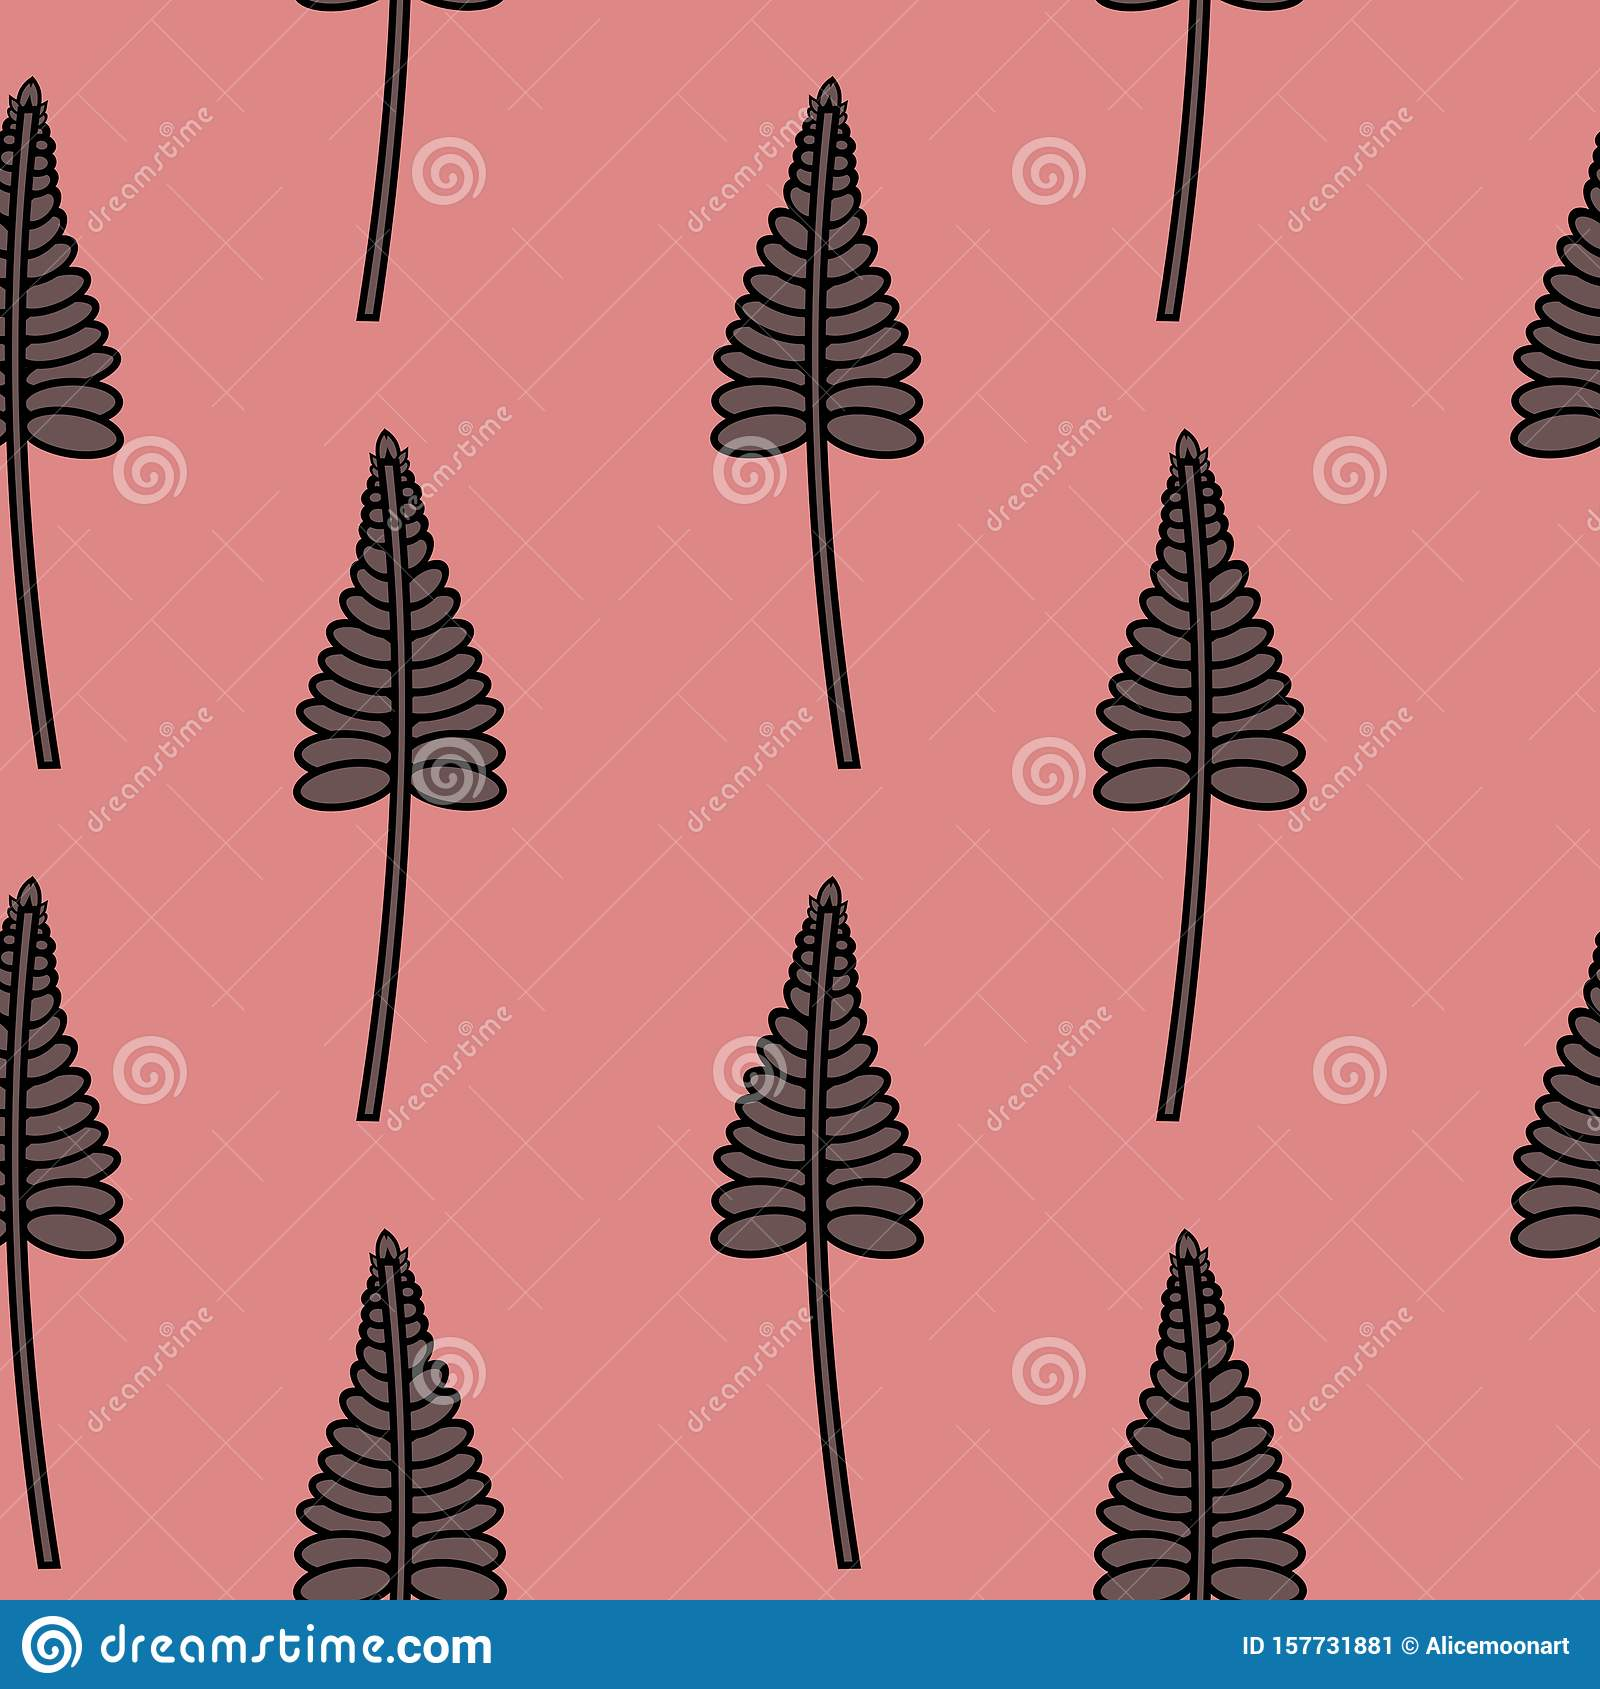 Seamless Pattern of Stylized Leaves on Pink background